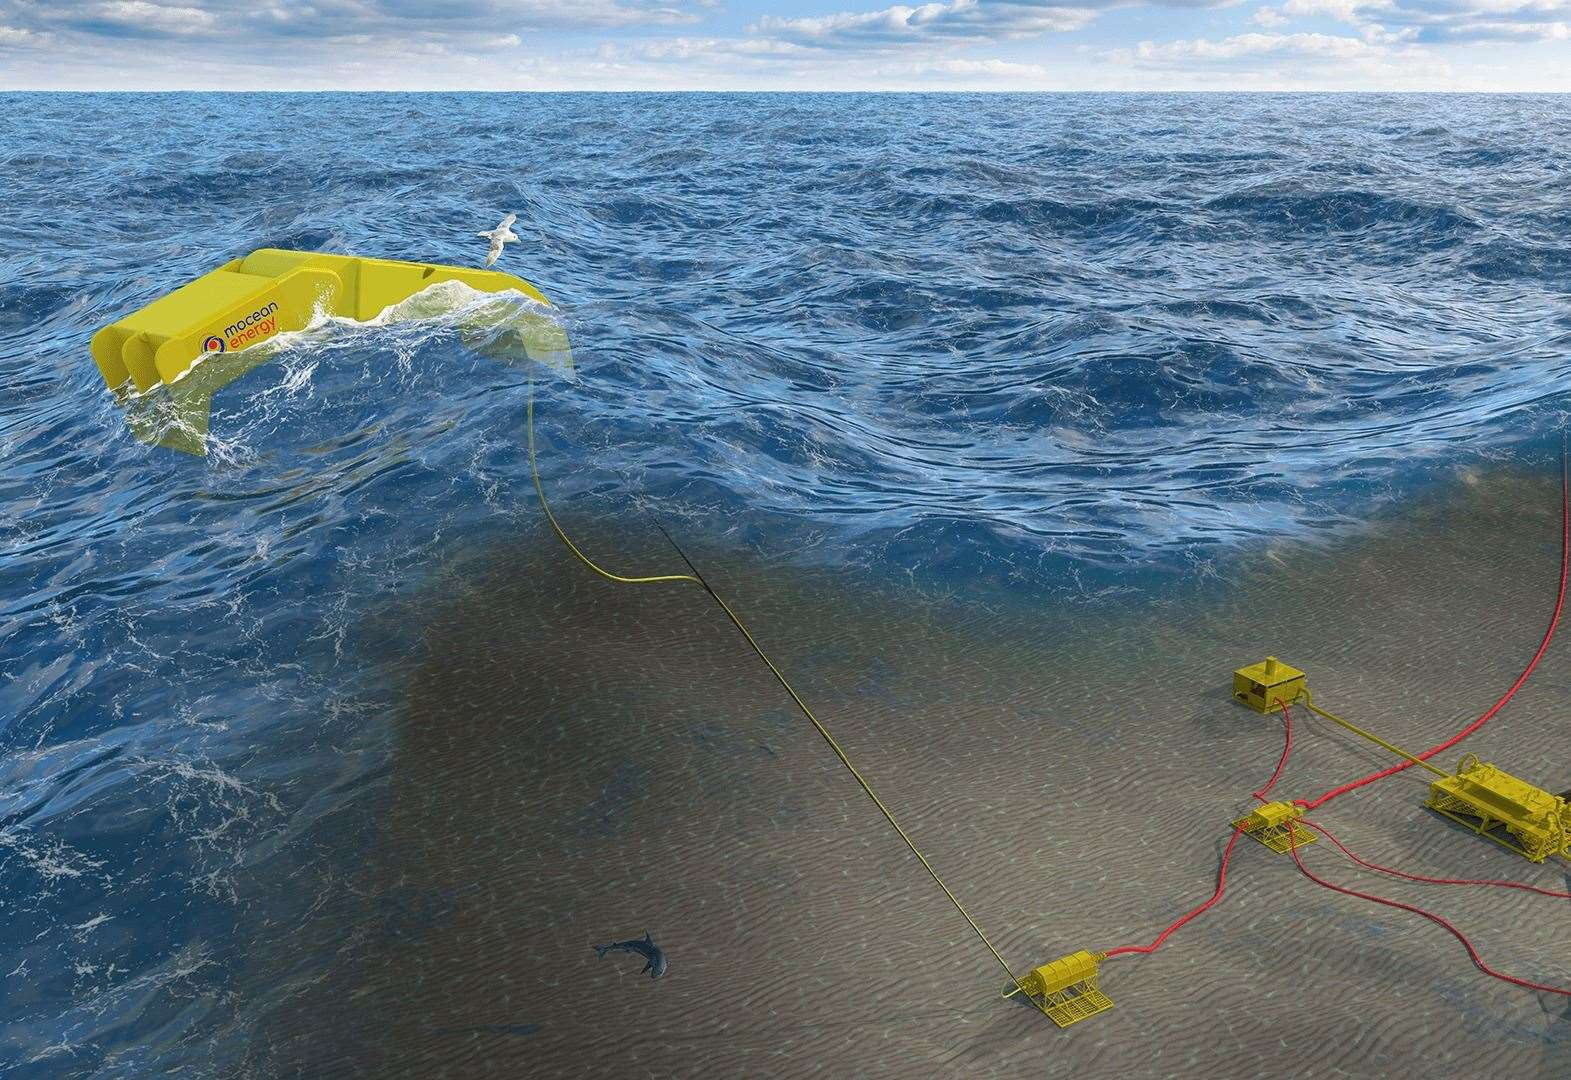 Prototype will put wave power to use under the surface